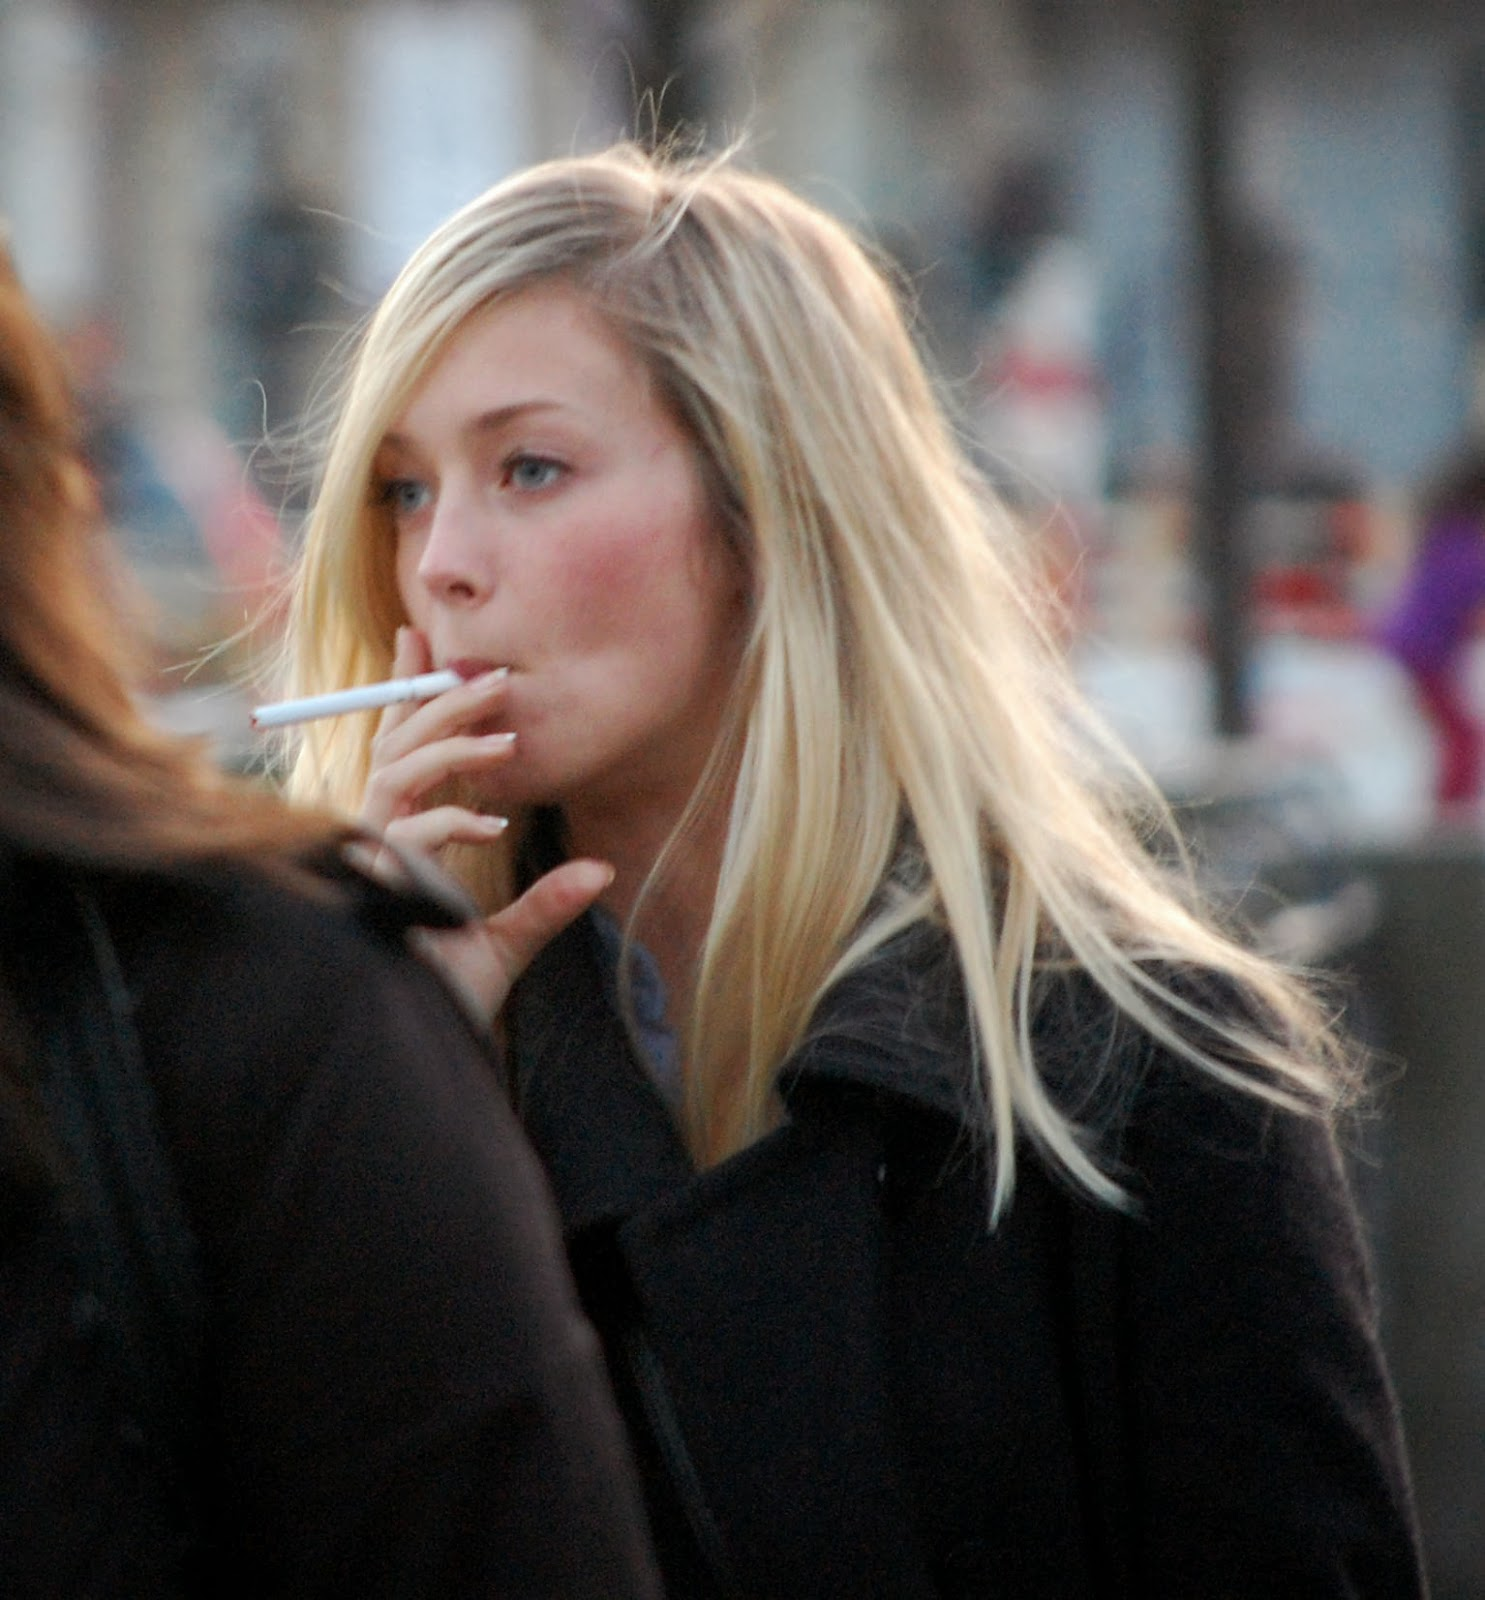 47 smoking in girls and young